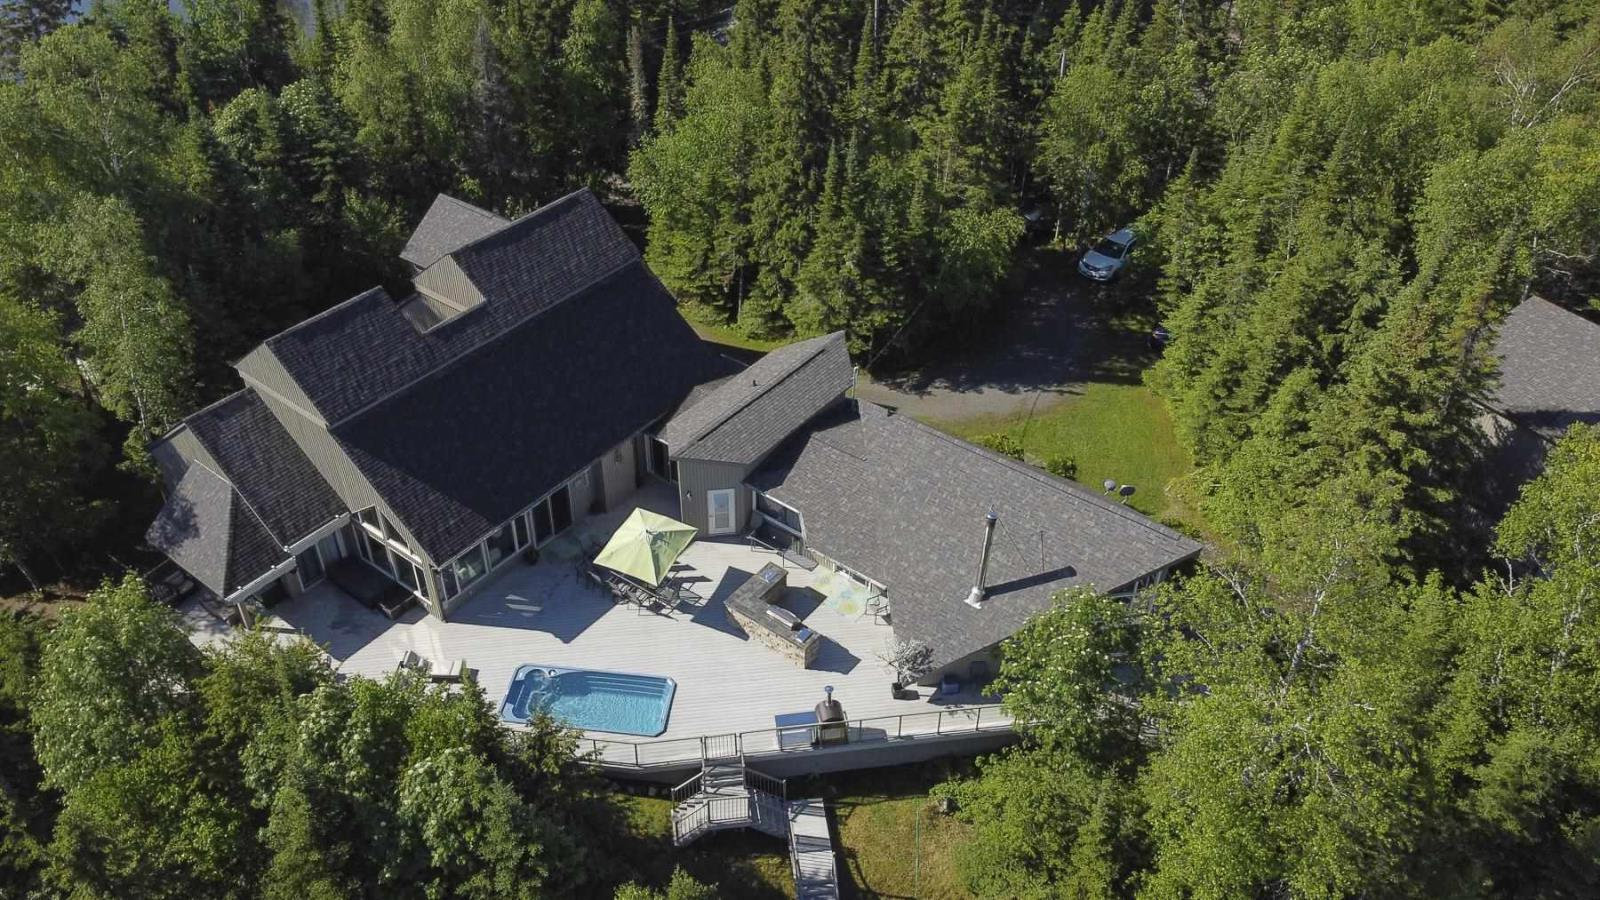 residential property for For sale at Shuniah, Ontario